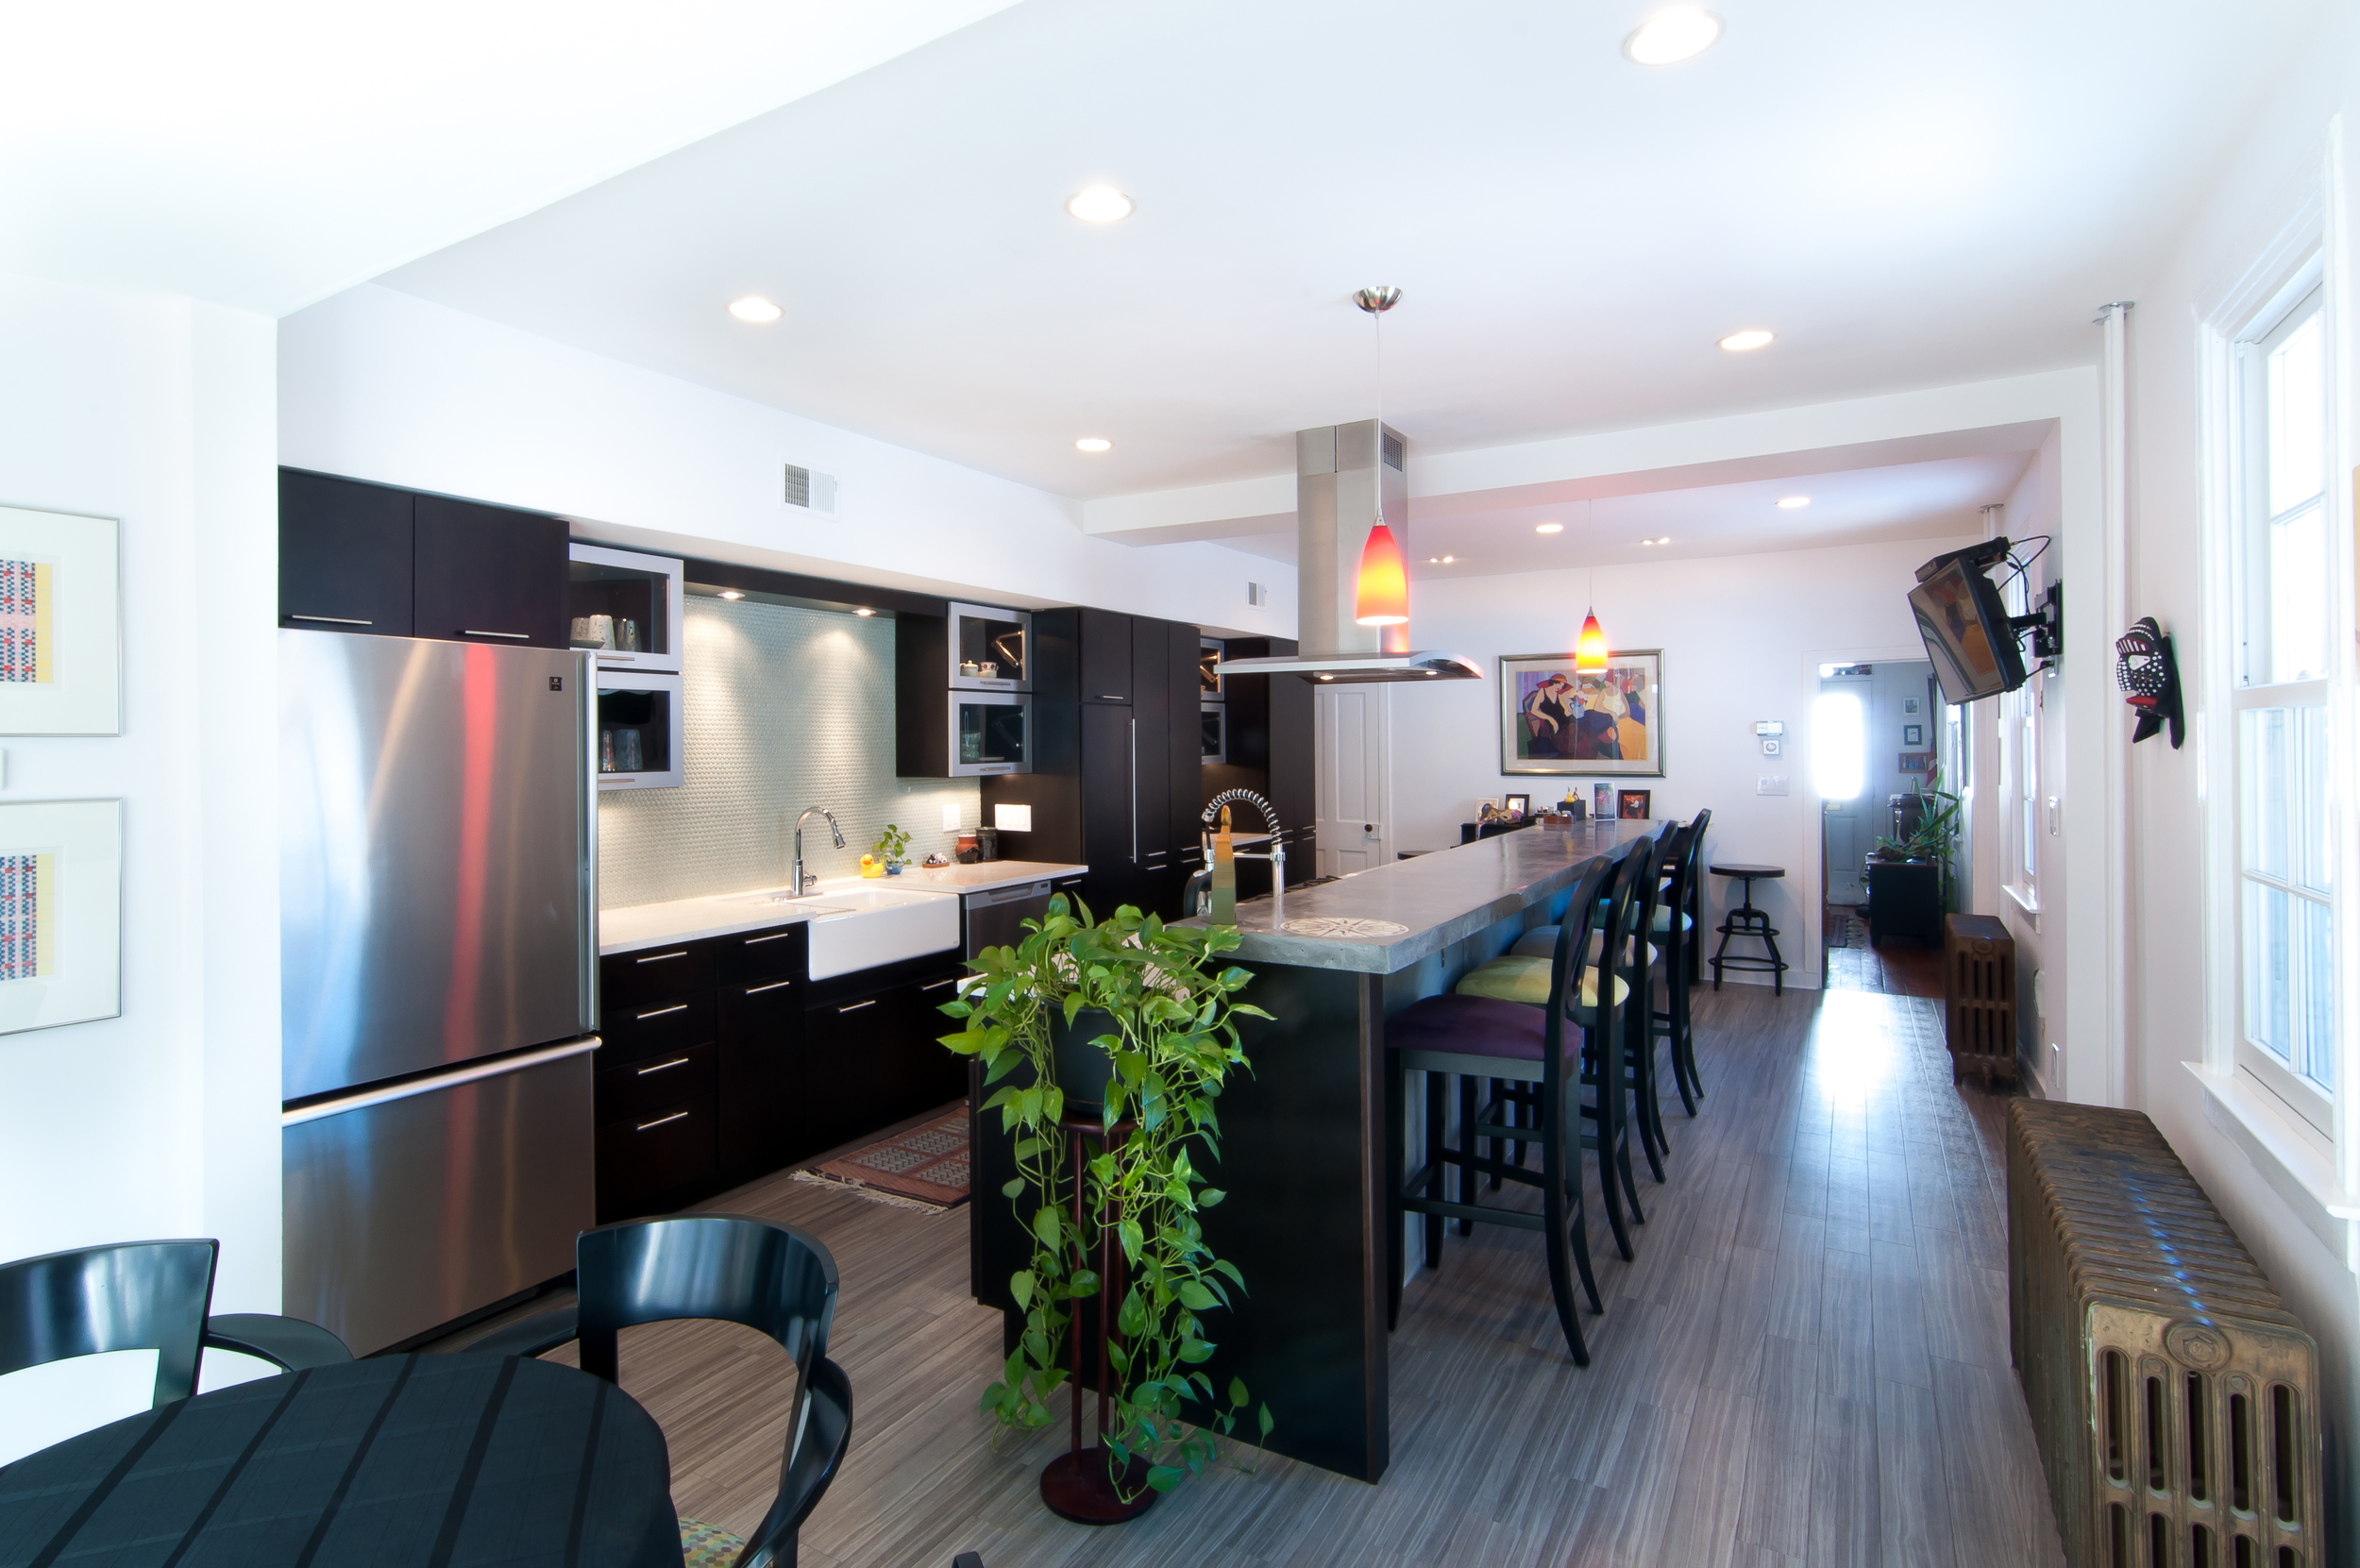 The kitchen and dining area continue the nautical theme with the gray vinyl floor.